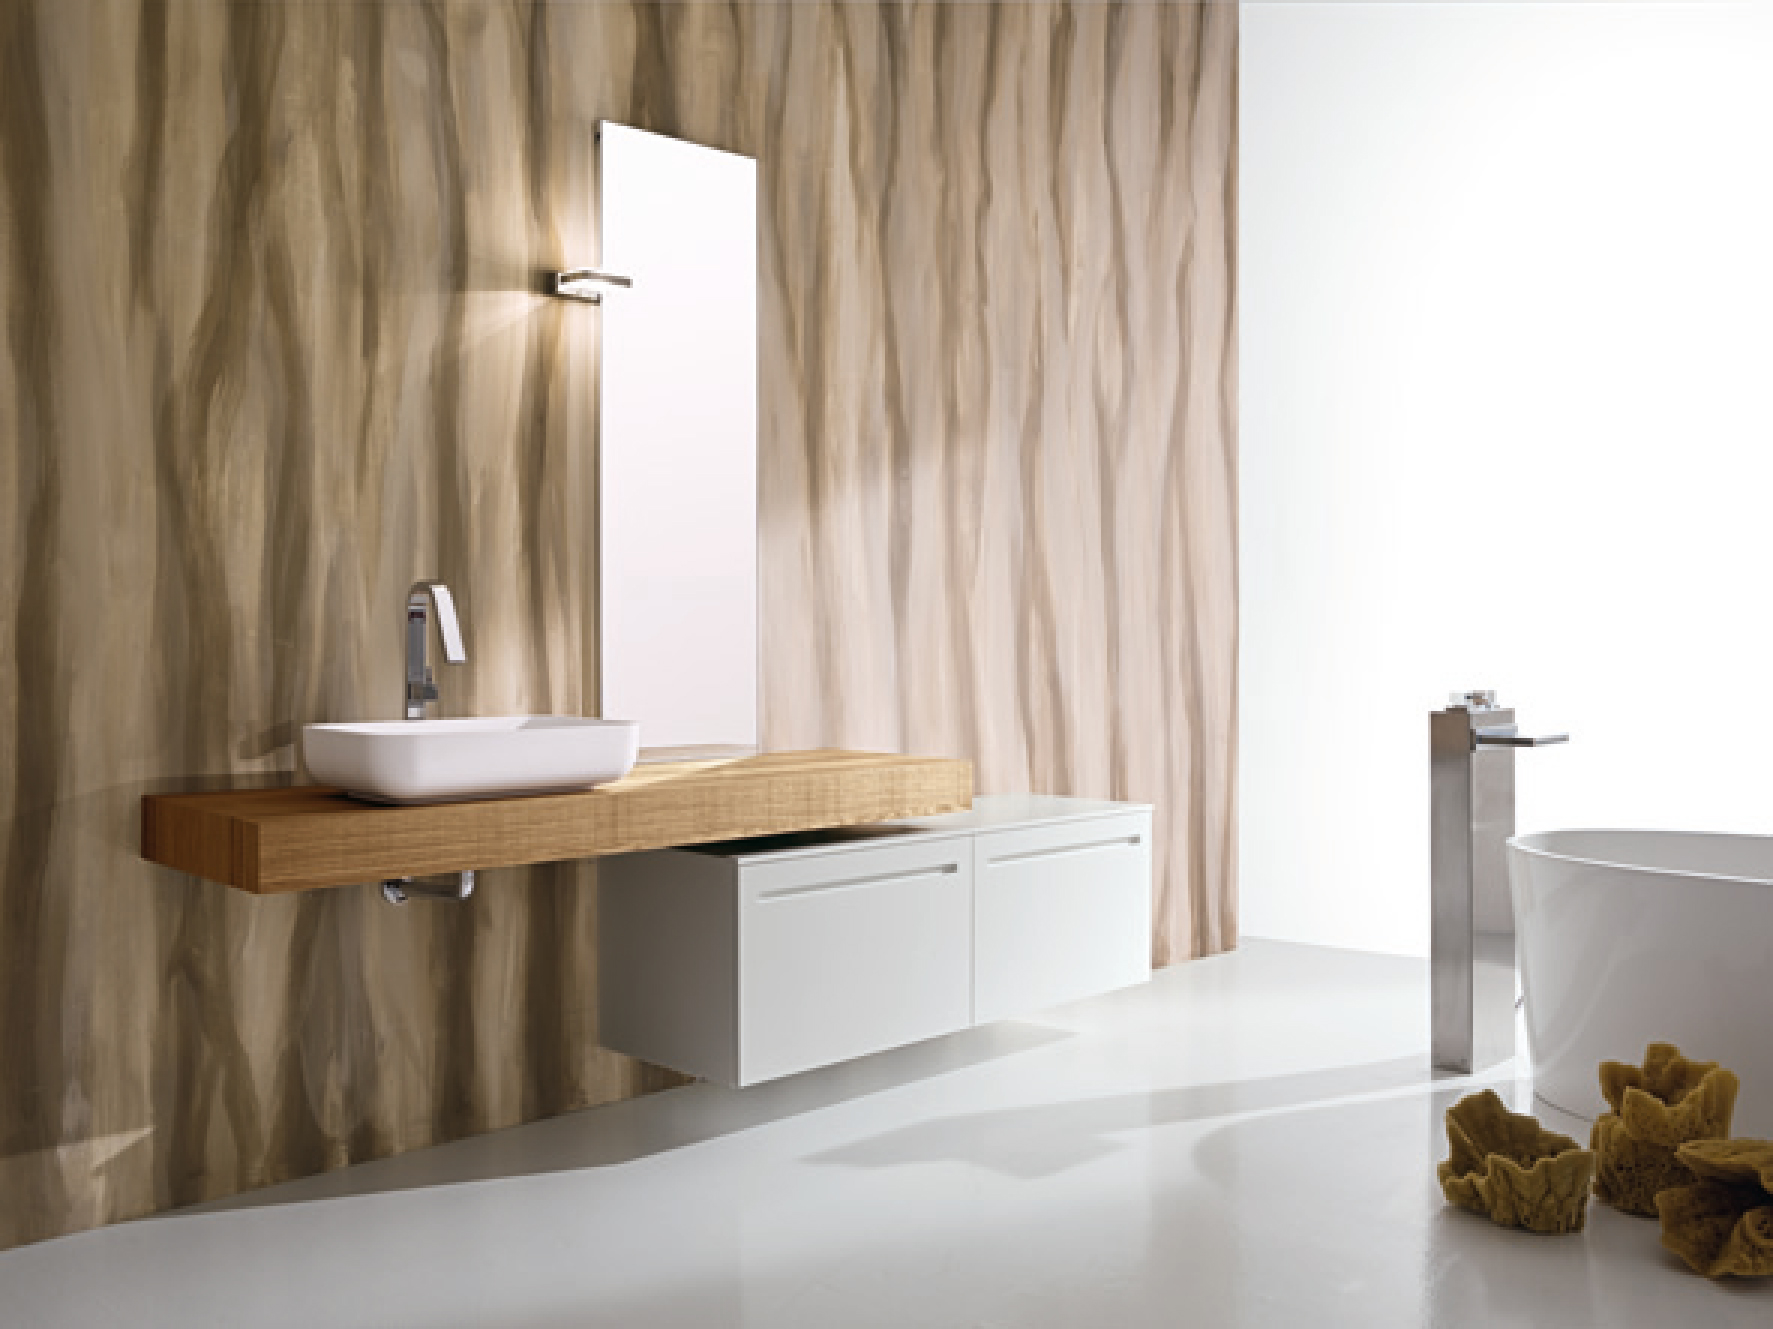 http://www.sumisuragroup.com/uploaded/bagni_moderni_9.jpg